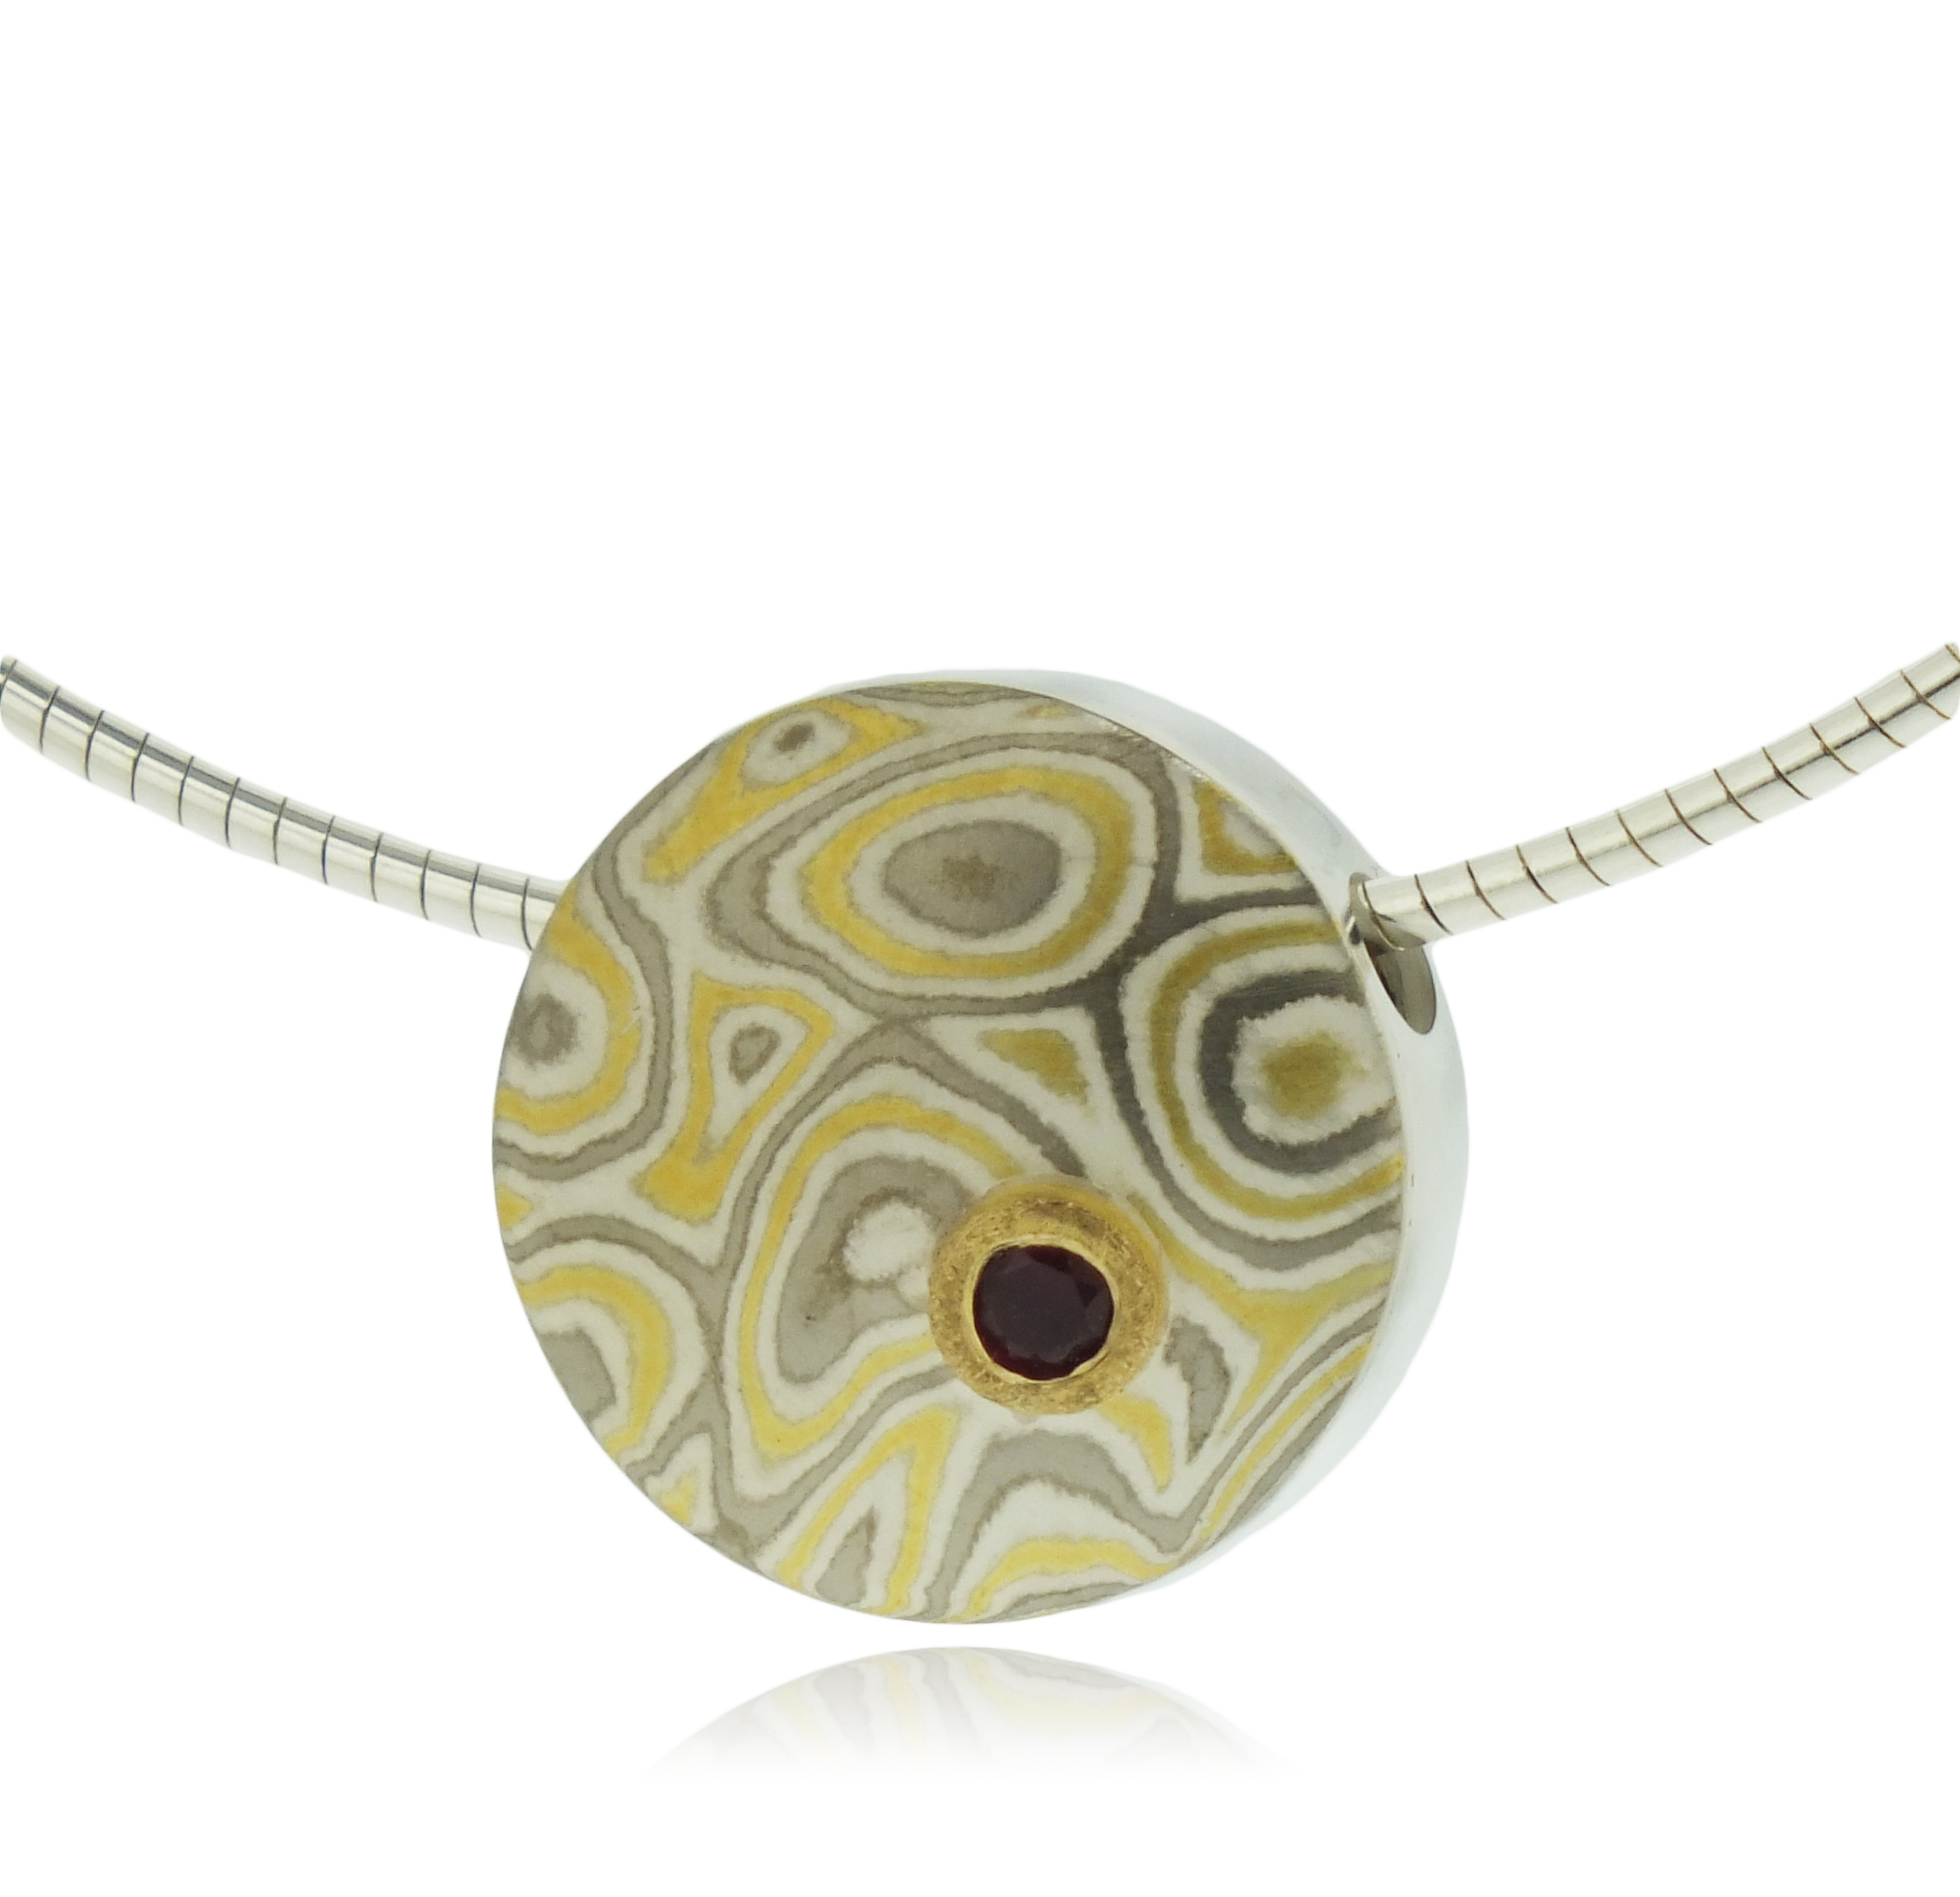 Mokume gane small discus pendant in  22k gold, 18k white gold and silver with ruby set in 22k gold